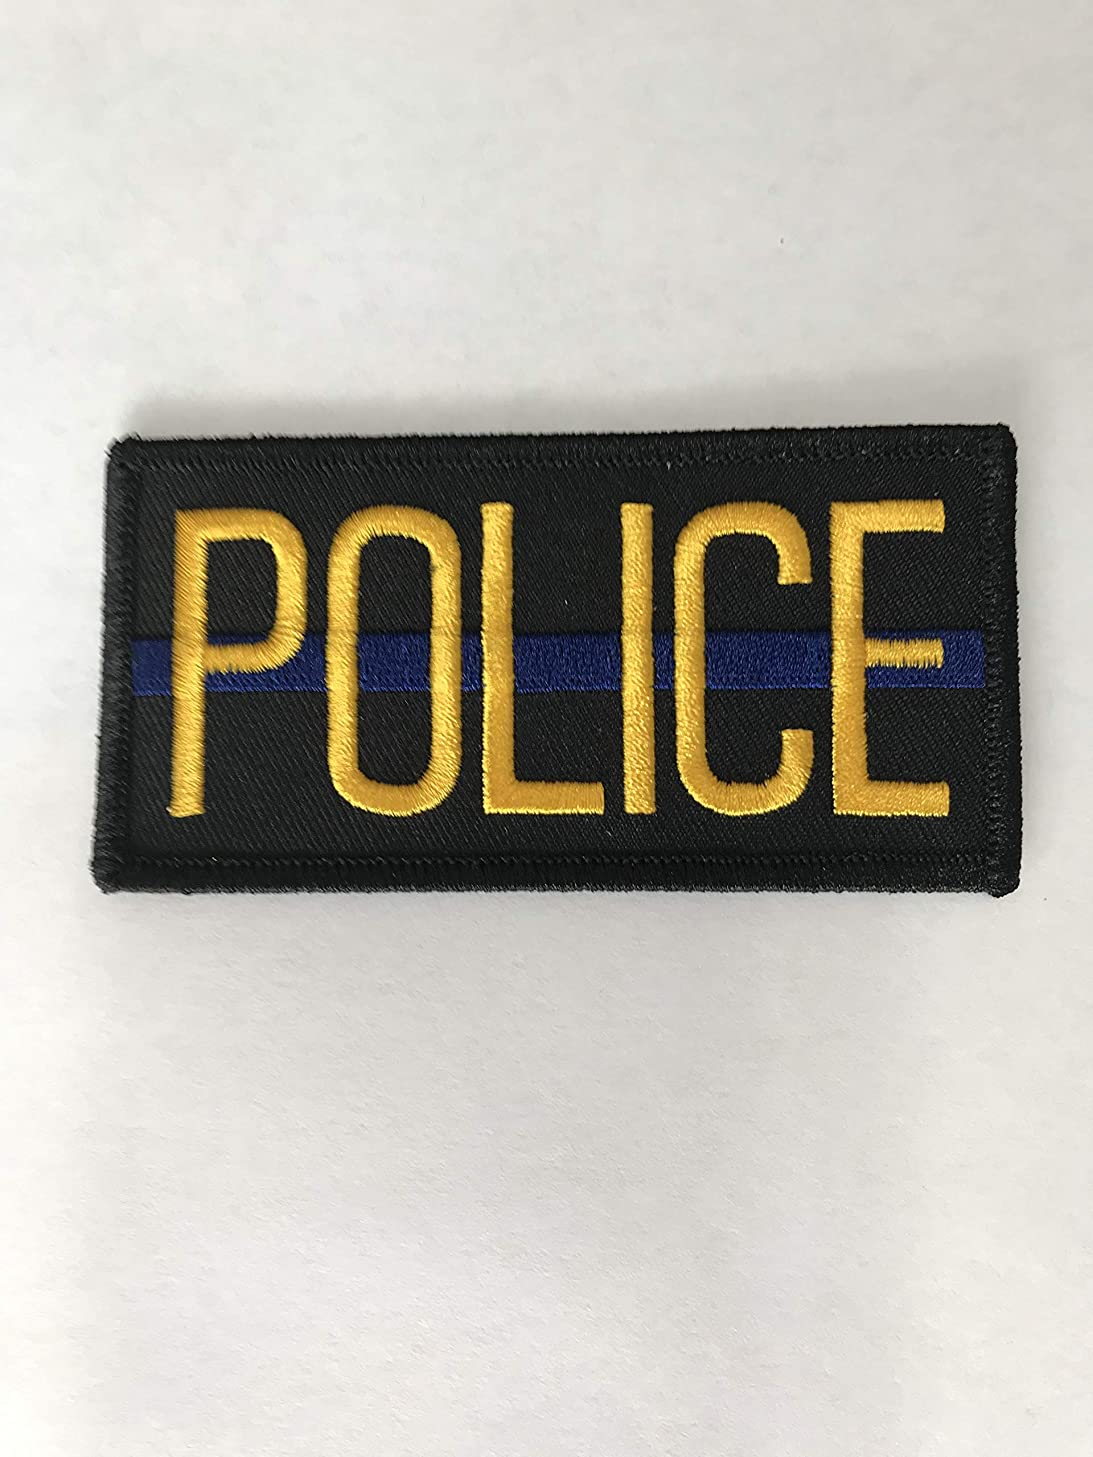 Police Officer Patch Chest or Shoulder (2 Pack) 4 x 2 inches Embroidered Yellow on Black with Blue Strip